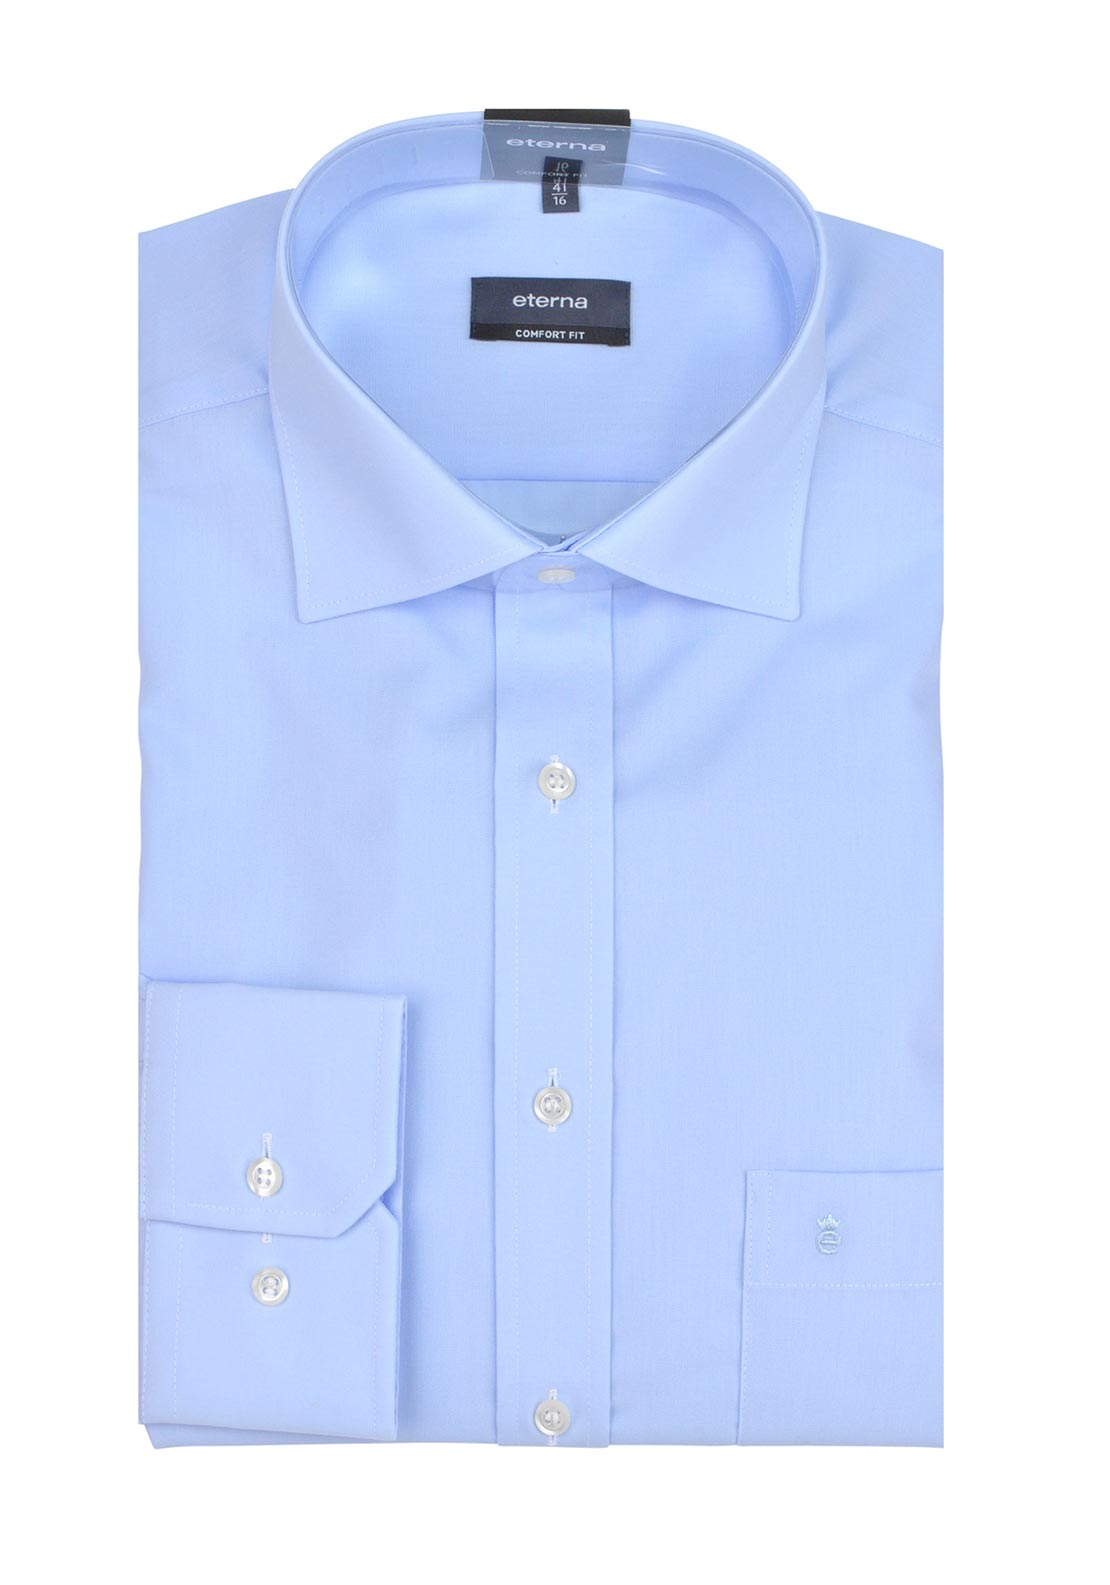 Eterna Mens Long Sleeved Formal Shirt, Blue